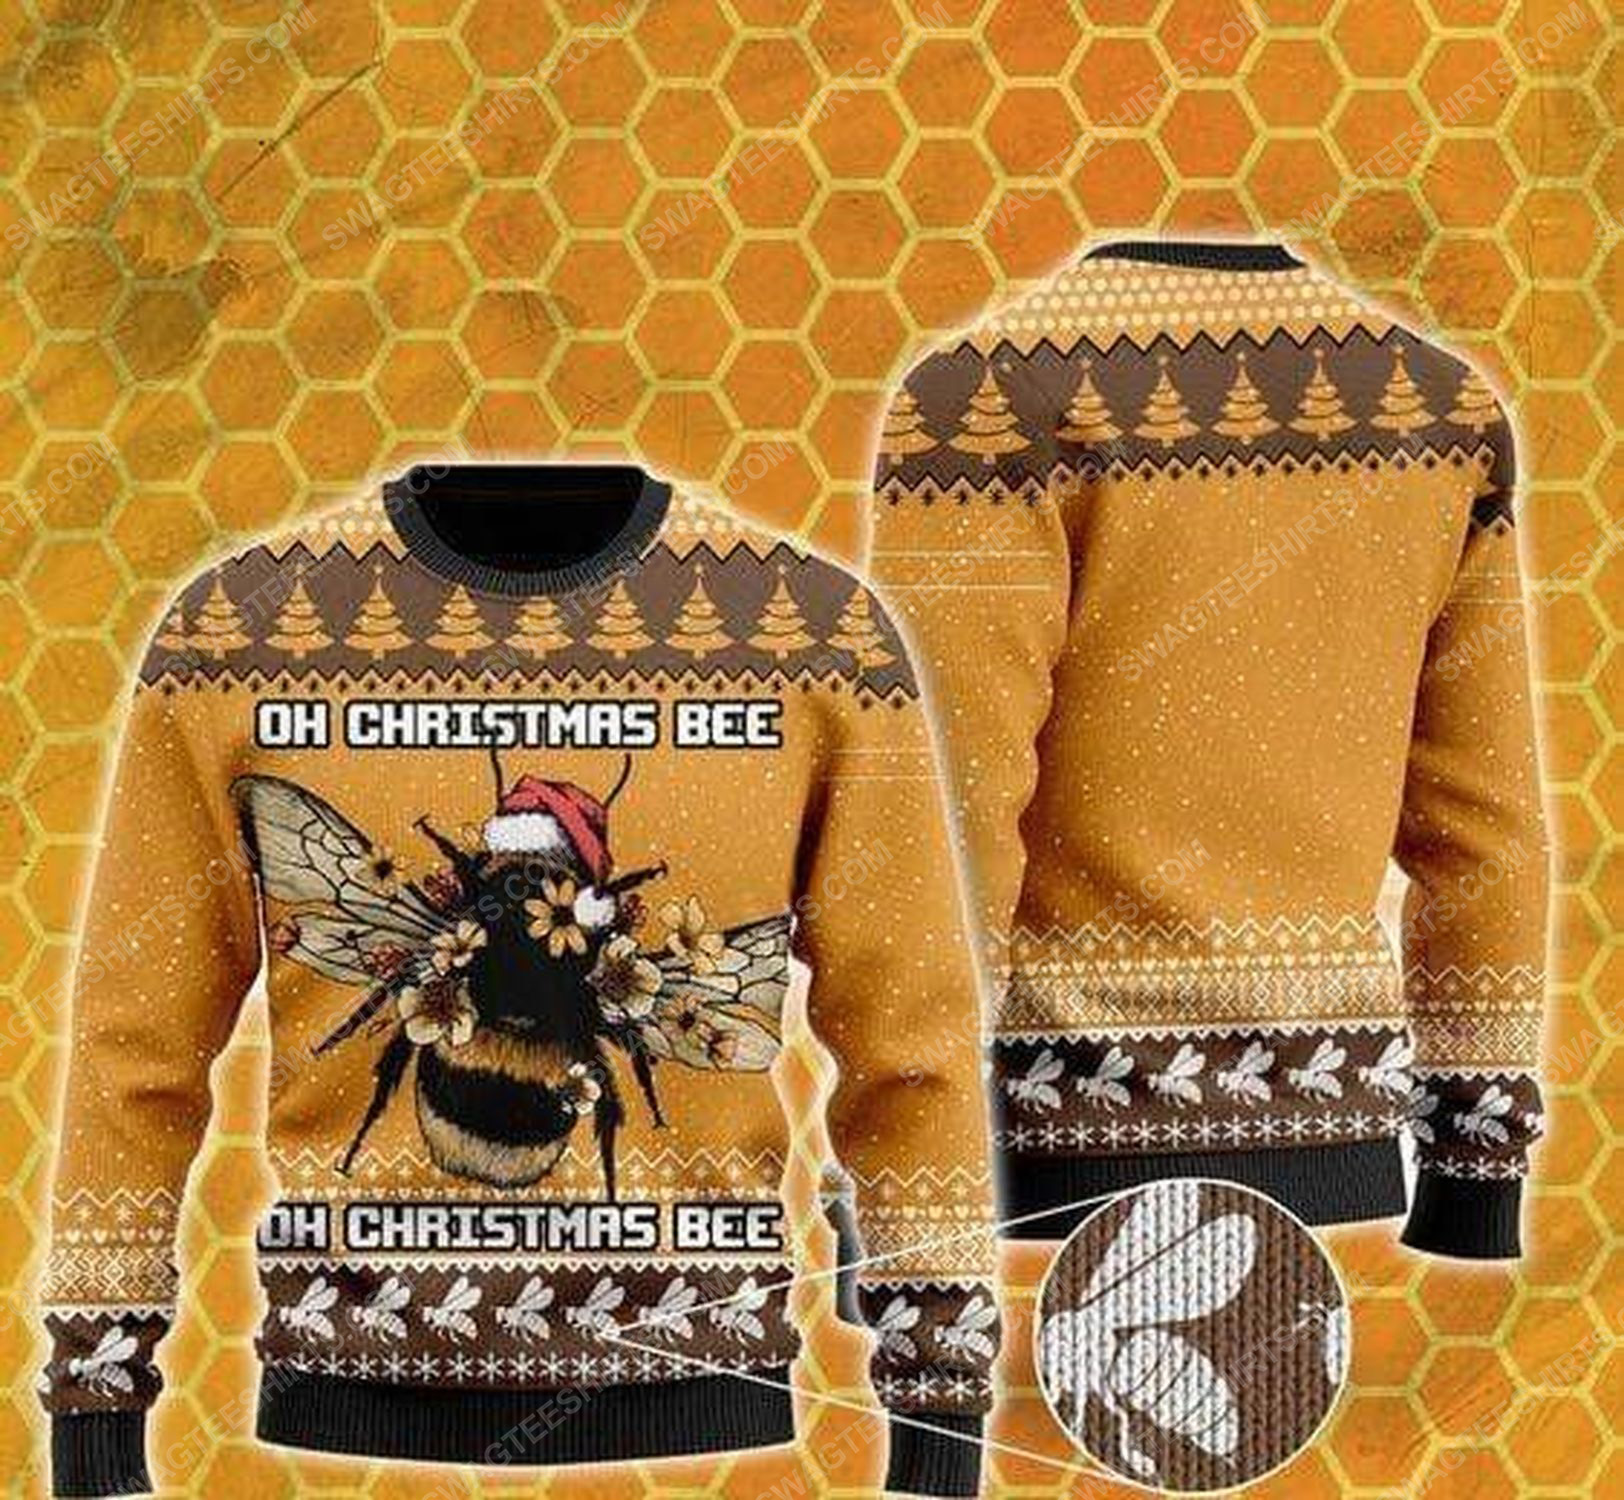 Oh christmas bee all over print ugly christmas sweater 1 - Copy - Copy